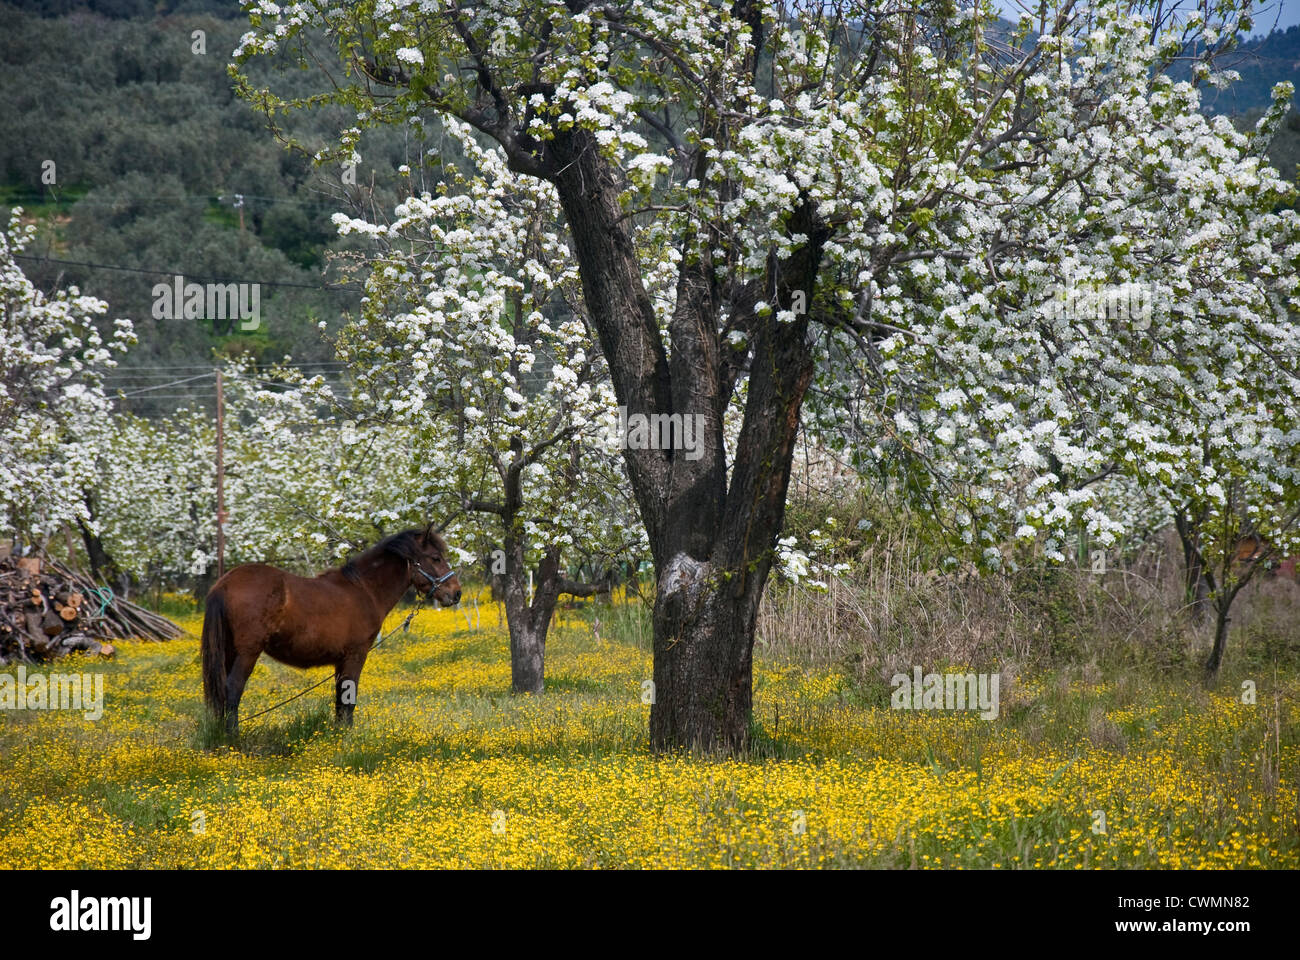 A horse standing on a yellow-blossomed meadow beneath blossoming pear trees (Pelion peninsula, Thessaly, Greece) Stock Photo